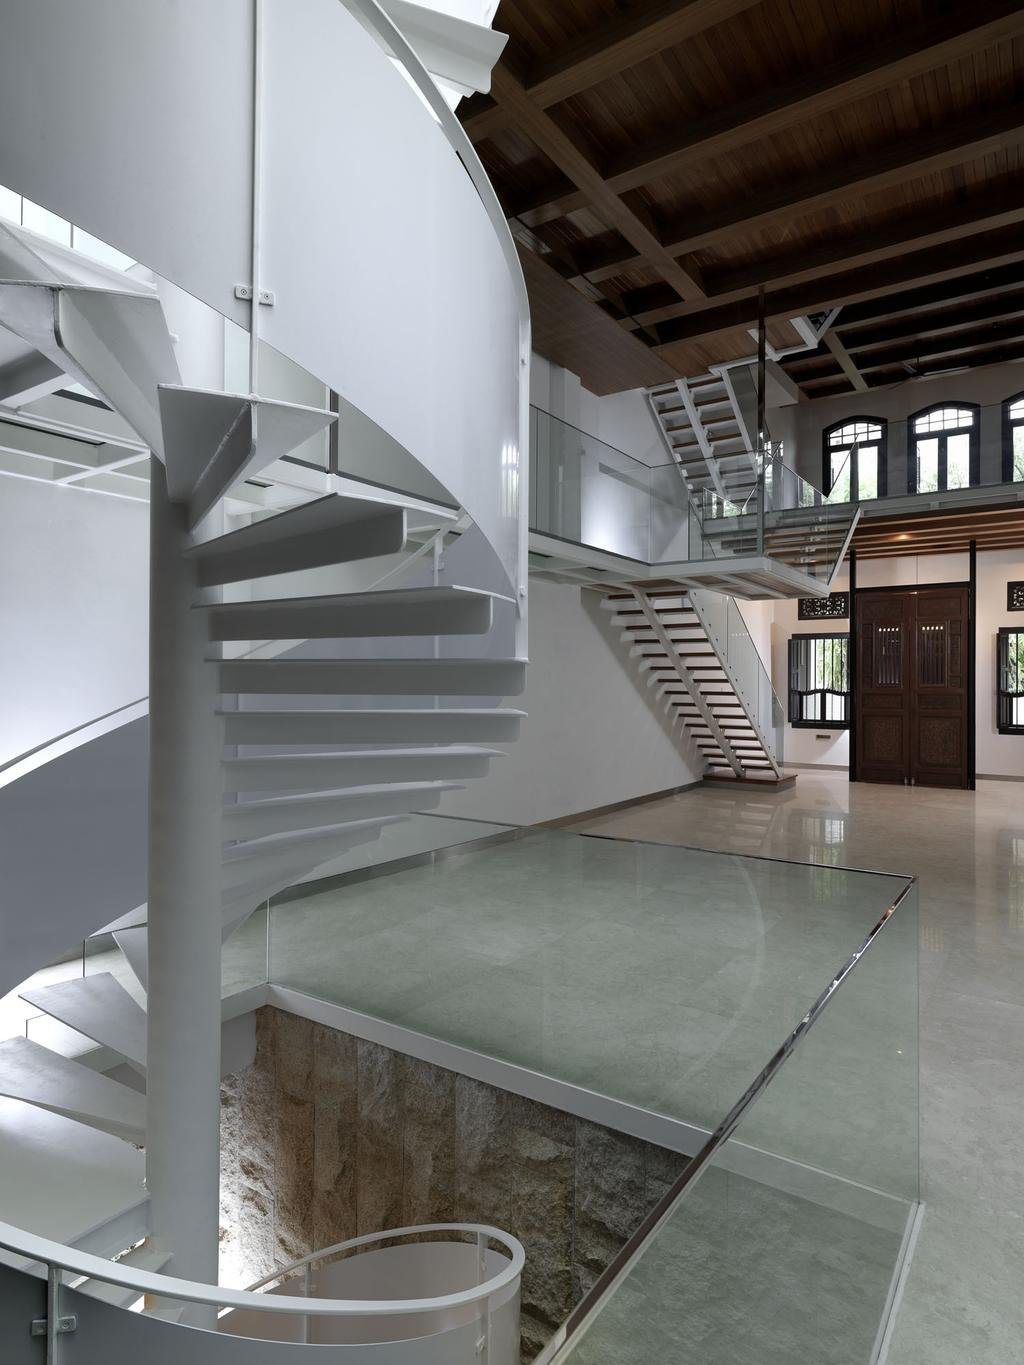 Traditional, Landed, Emerald Hill Shophouse II, Architect, Visual Text Architects, Banister, Handrail, Staircase